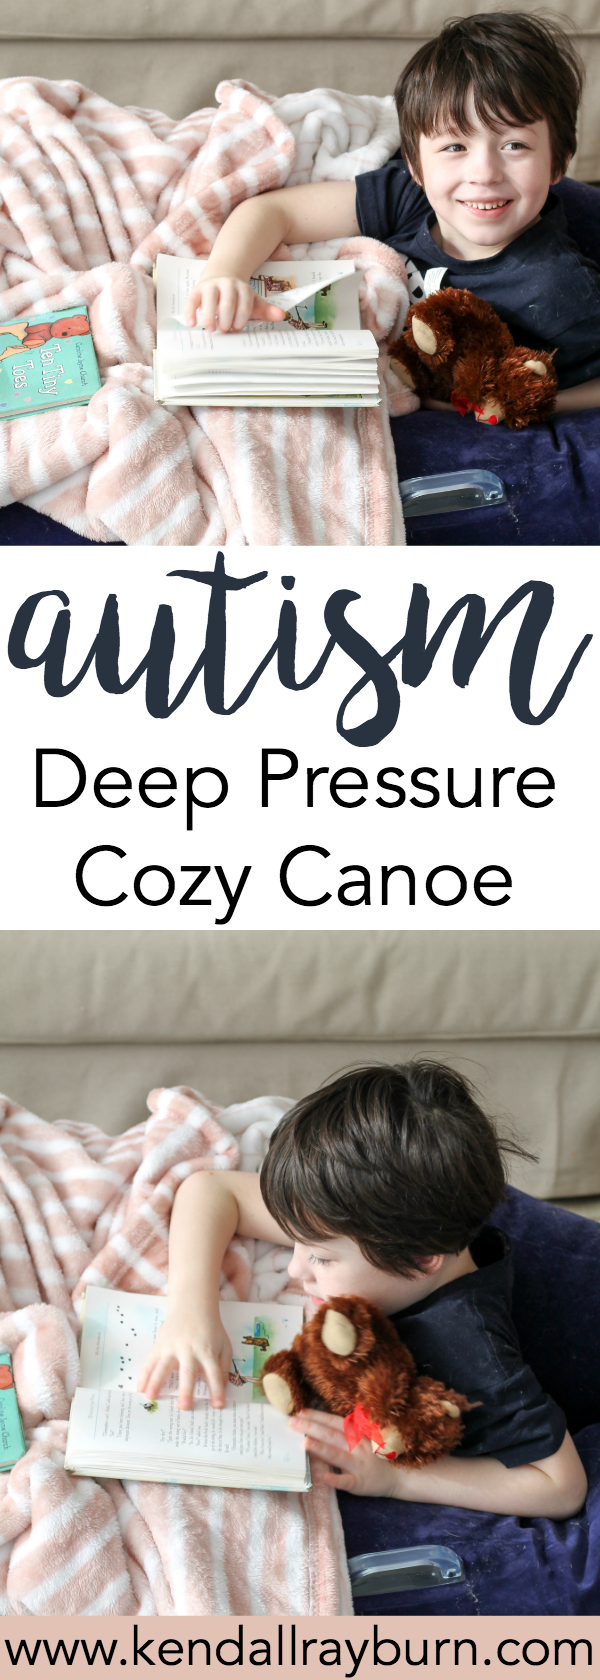 Autism: Cozy Canoe Reading Nook perfect for reading and relaxing!